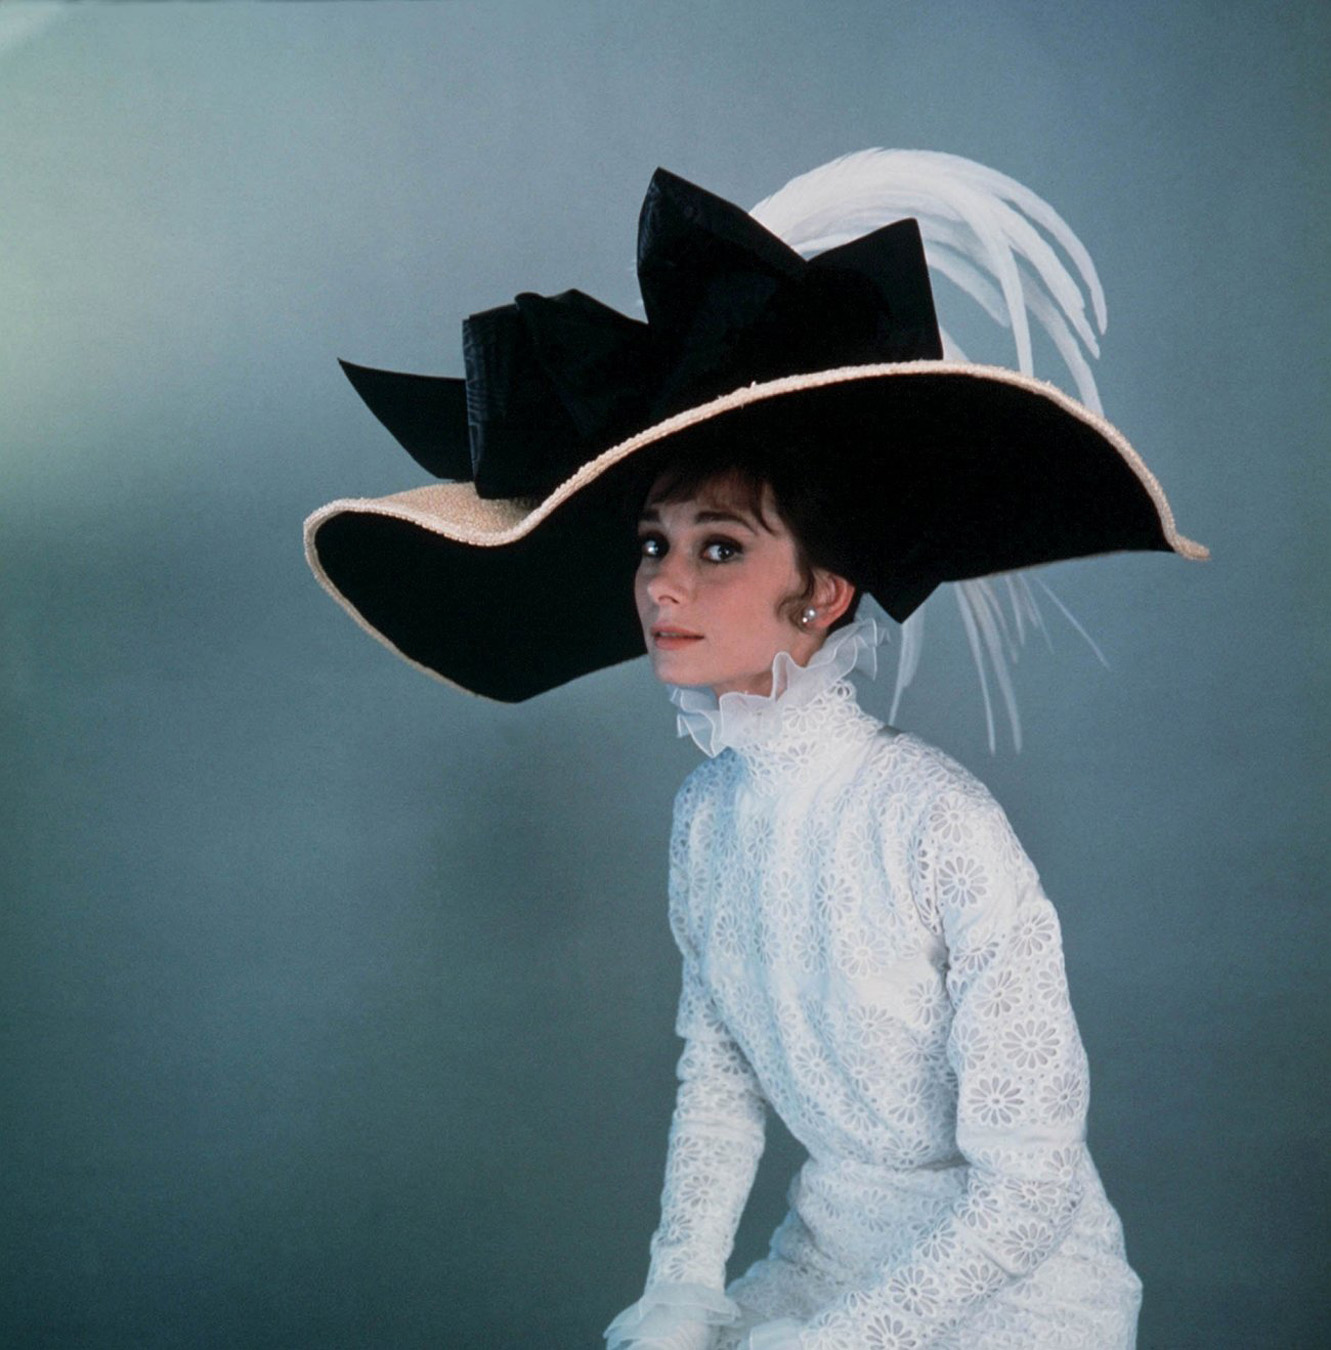 Musical Movie Fashion: My Fair Lady advise to wear in everyday in 2019